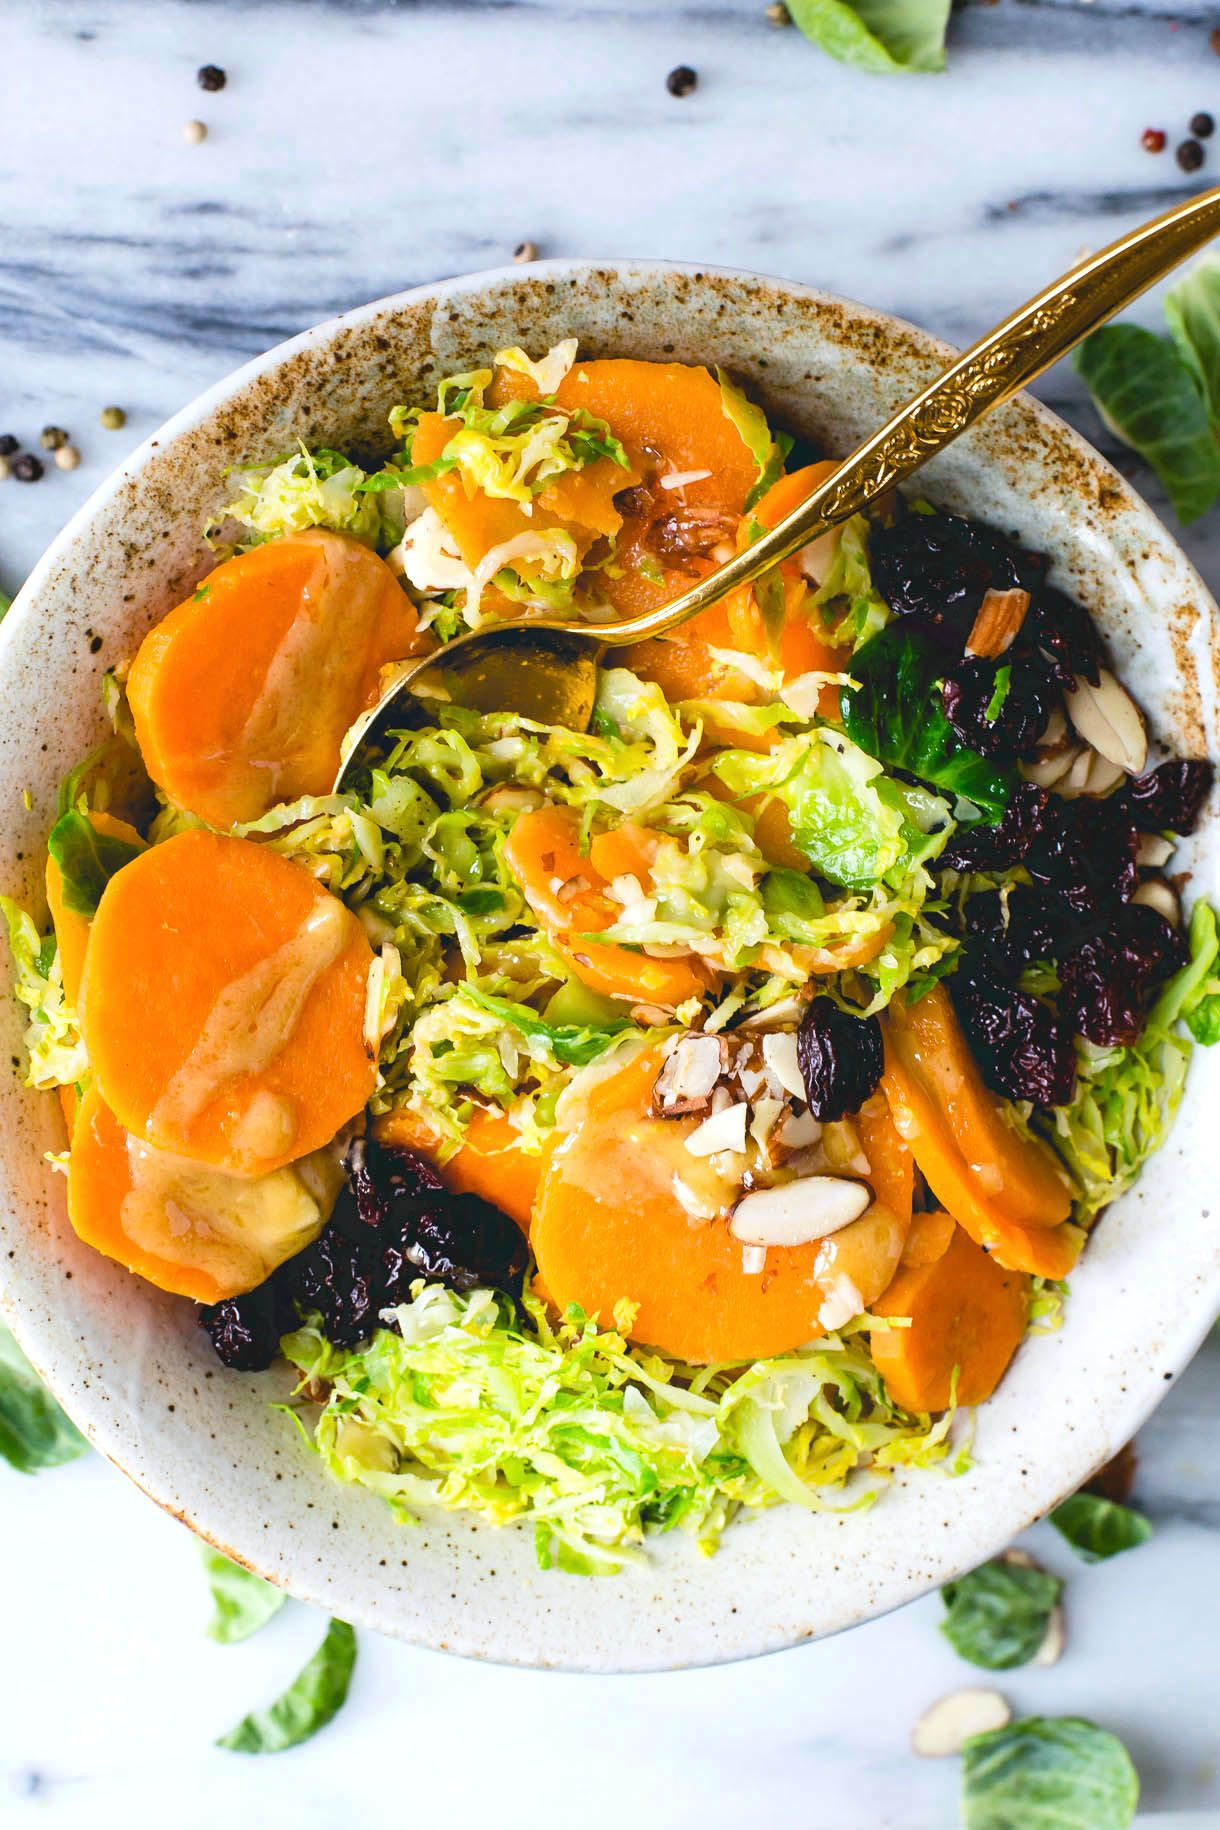 Glowing with paper-thin brussels sprouts, crunchy almonds and a maple mustard dressing, this colorful dish is the perfect answer for a winter craving.